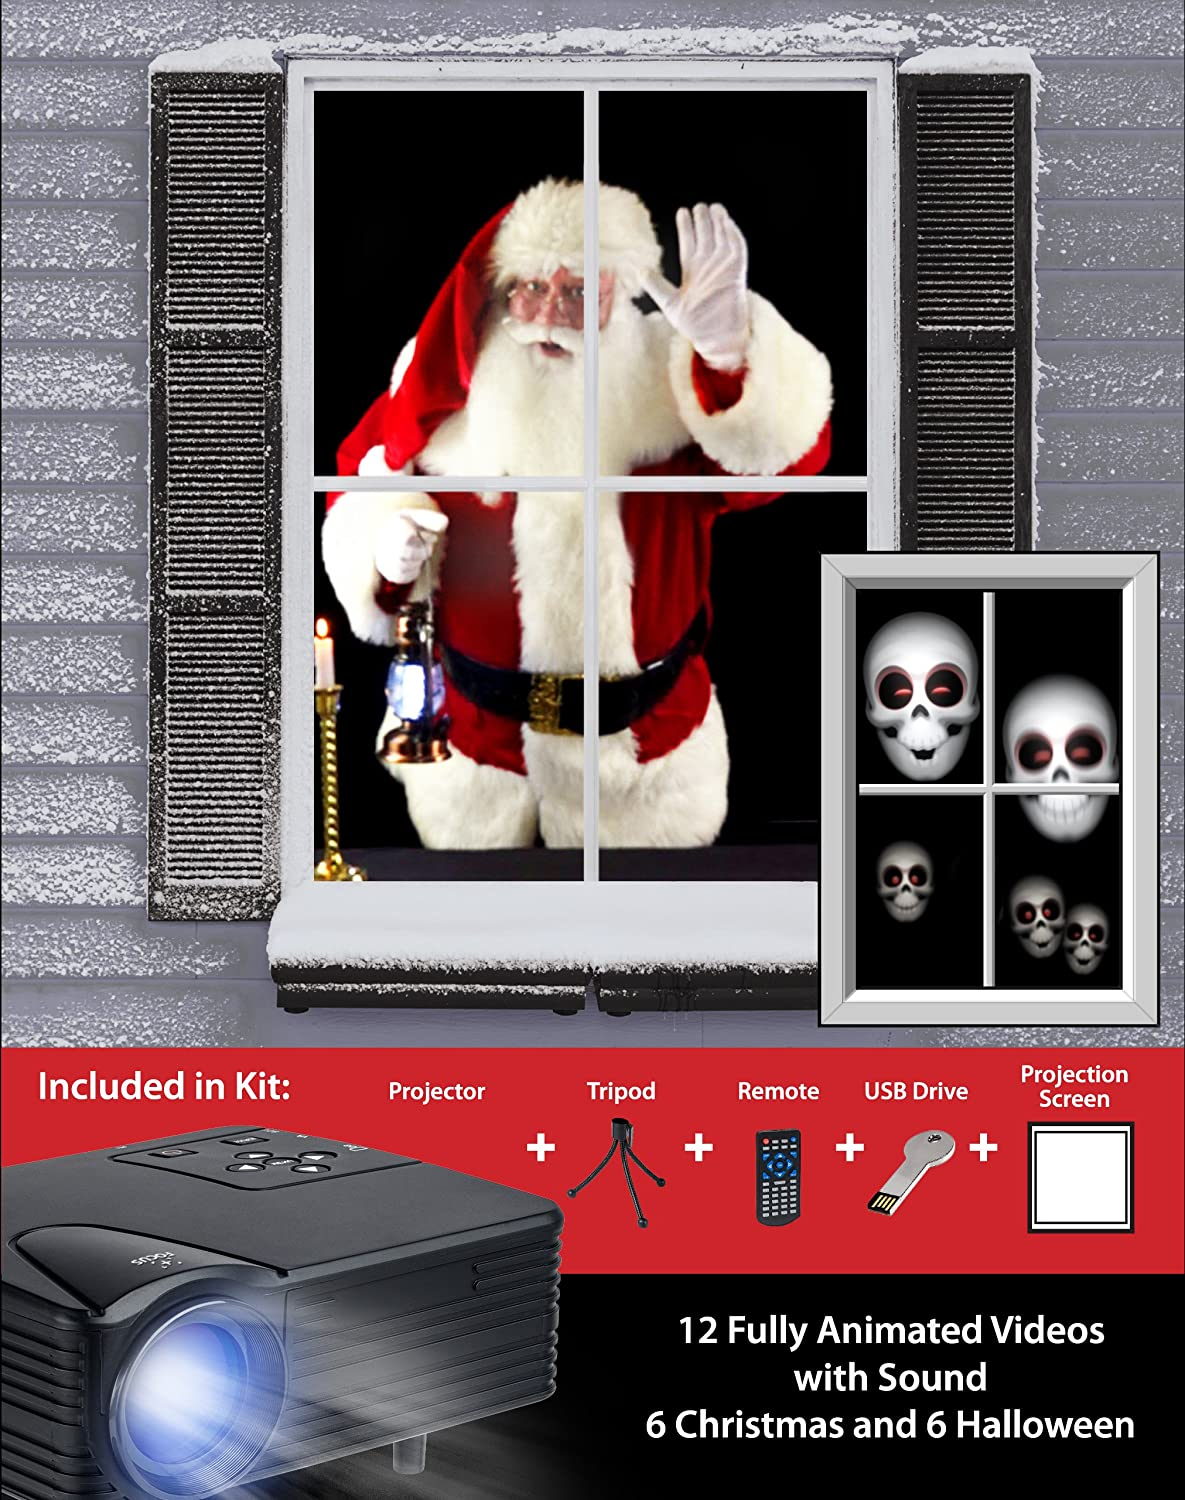 amazoncom mr christmas virtual holiday projector kit black kitchen dining